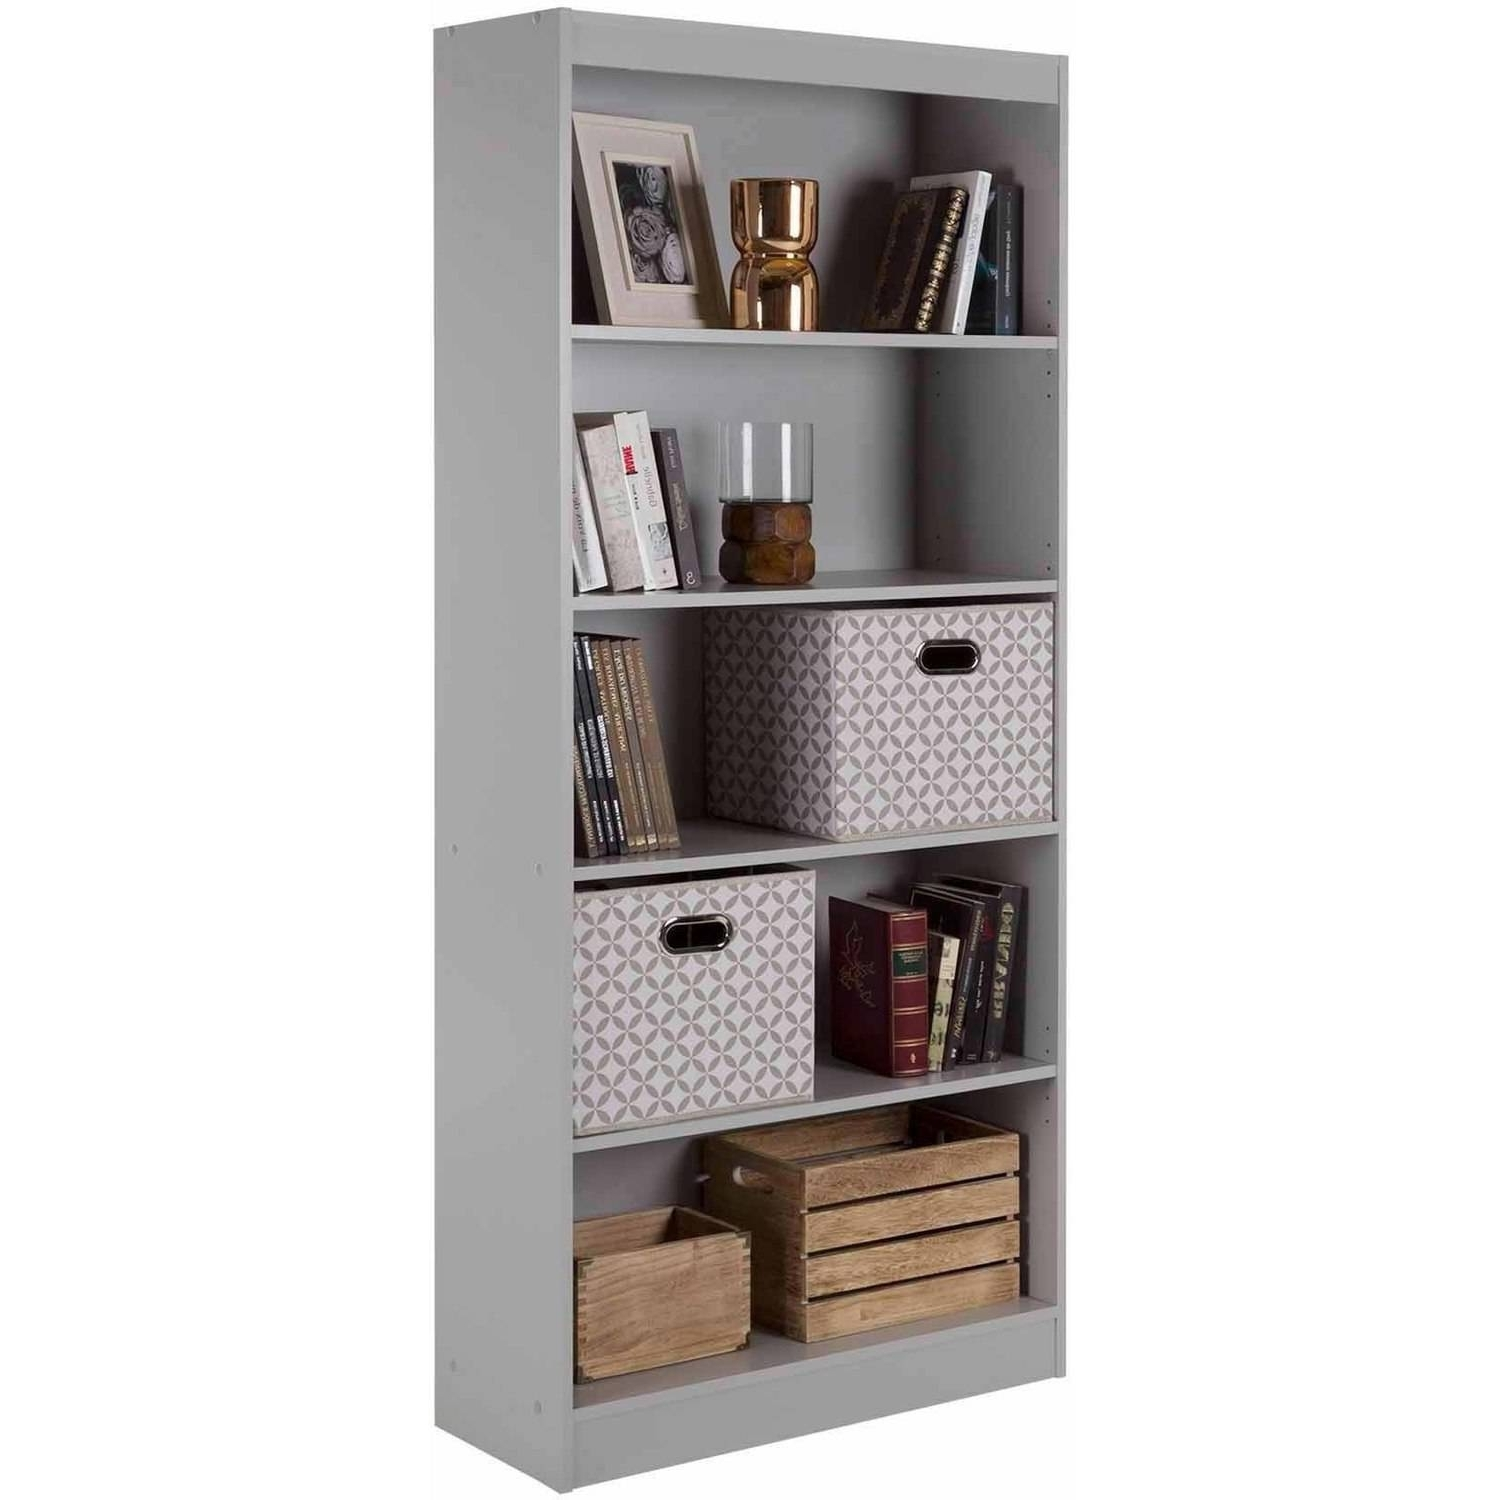 Best And Newest 5 Shelf Bookcase Black White Gray Brown Storage Bookshelf Wood Regarding South Shore Axess Collection 5 Shelf Bookcases (View 5 of 15)